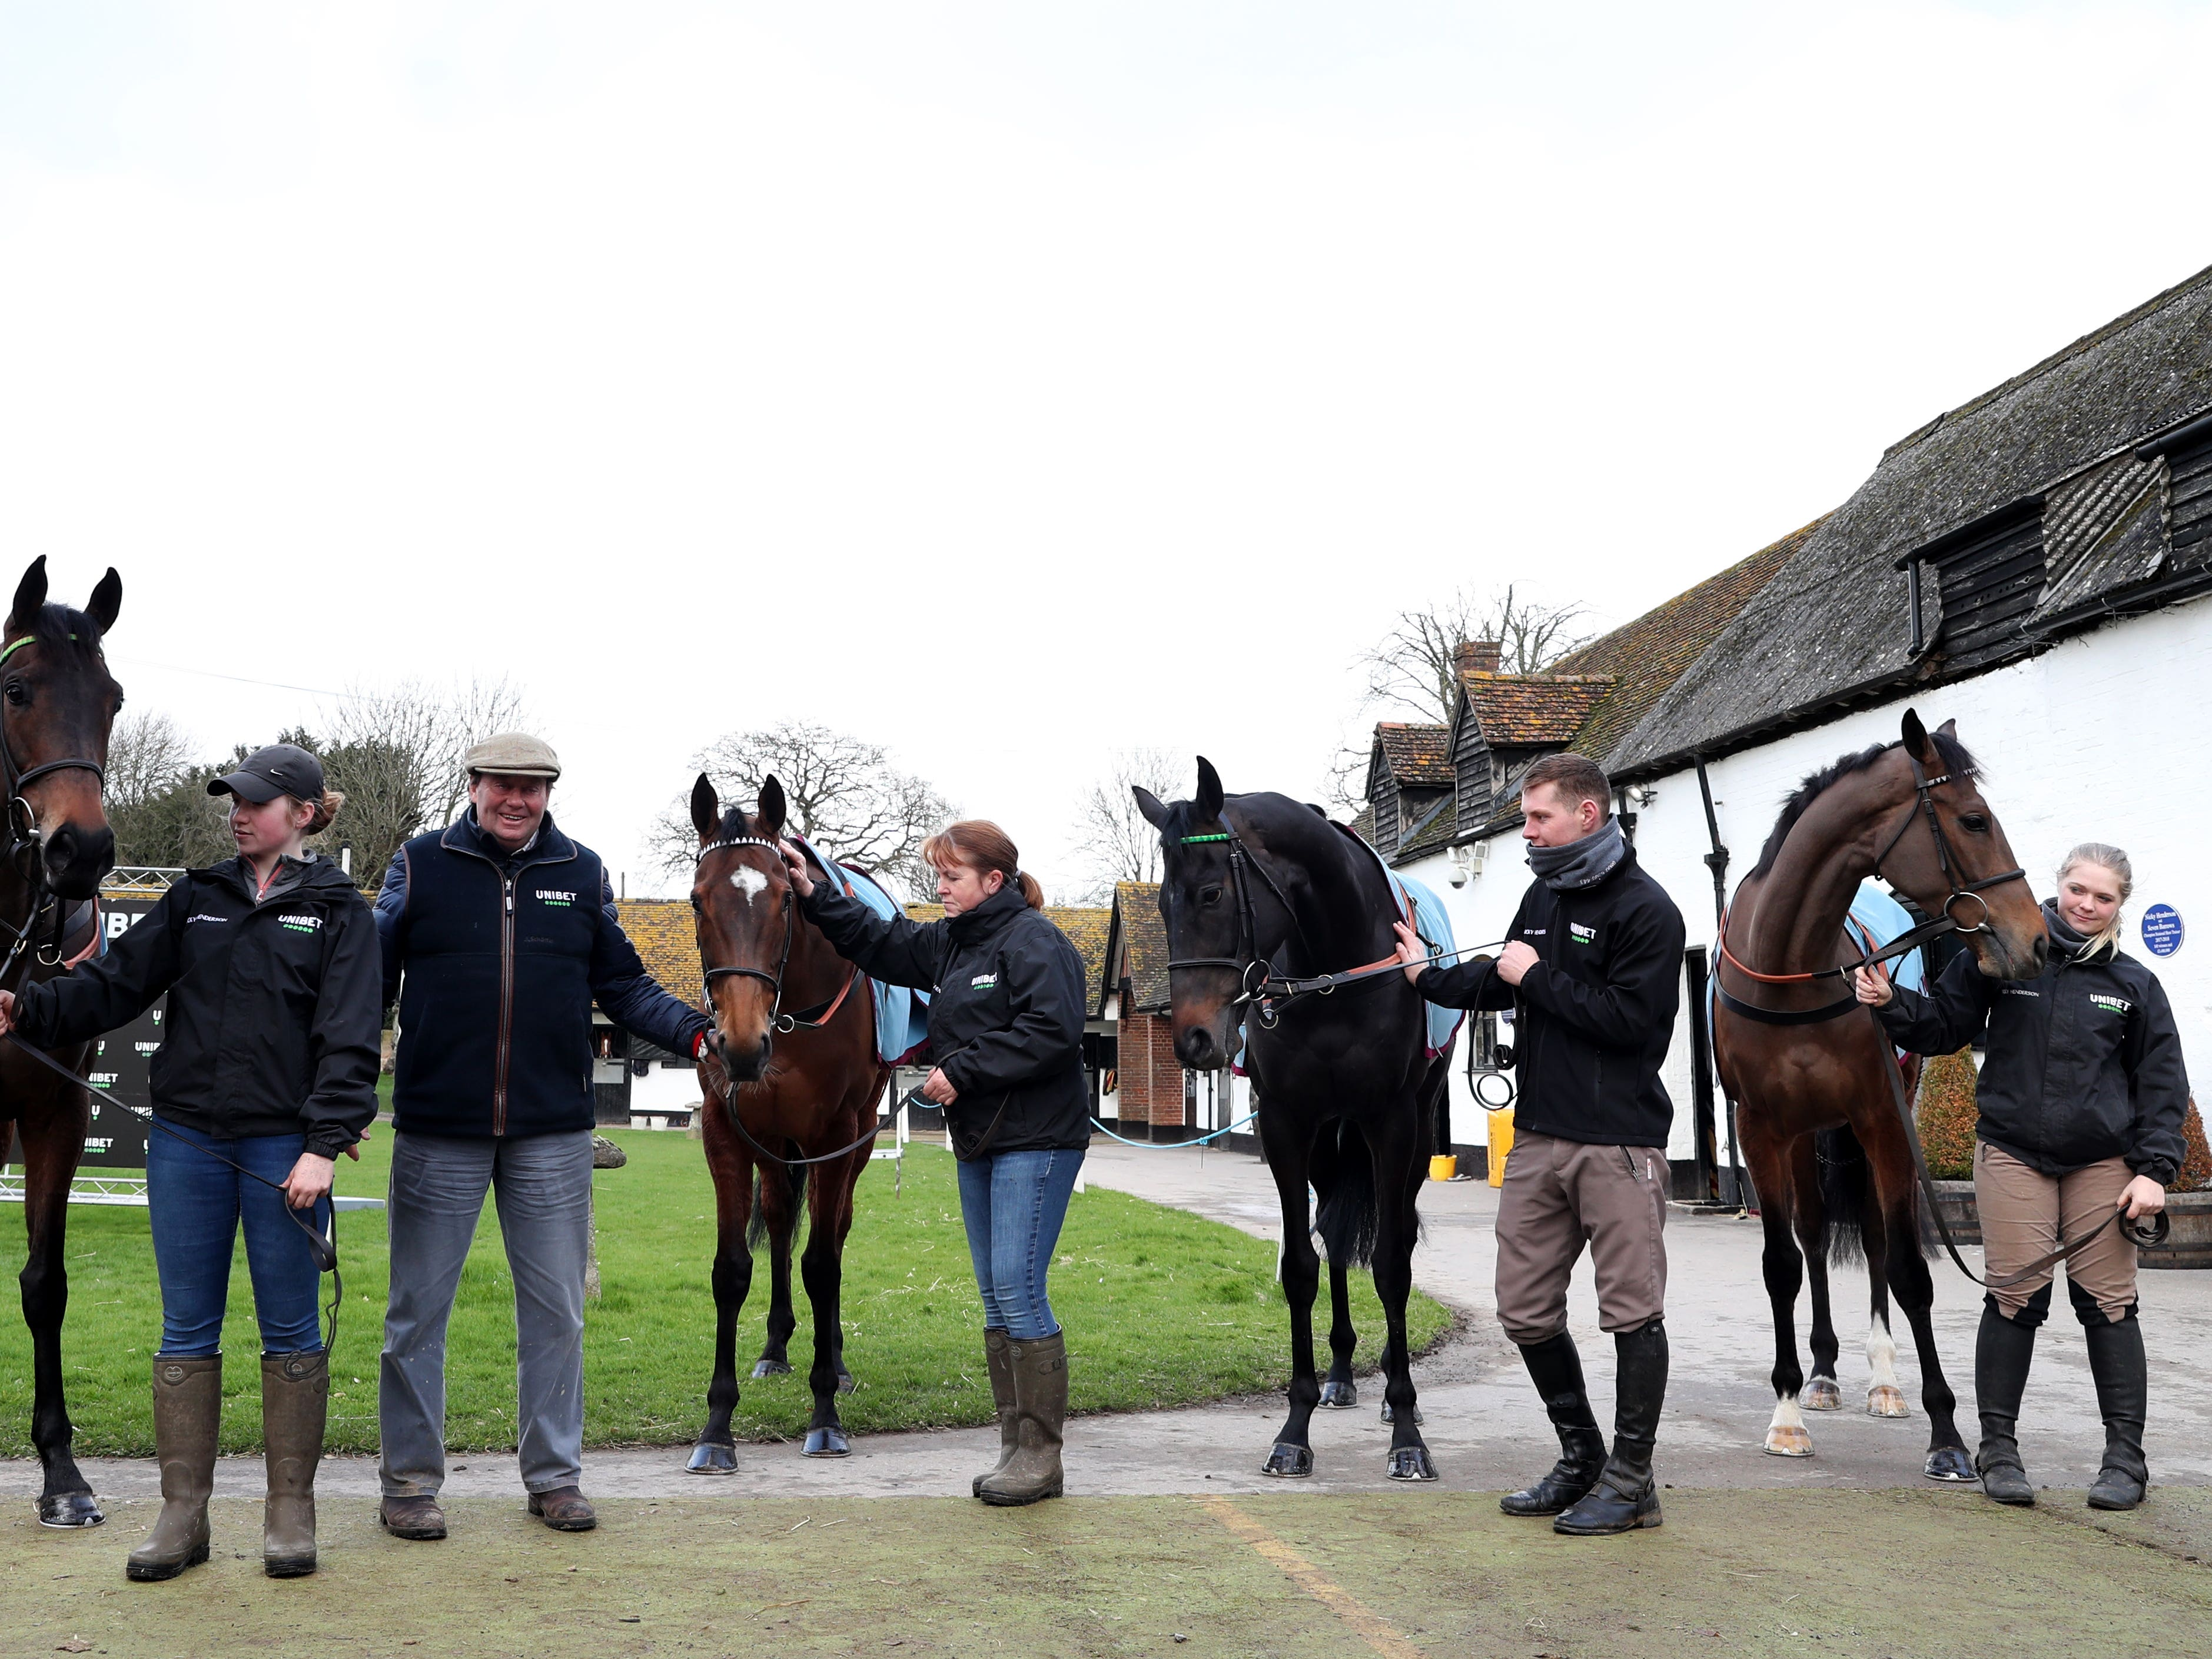 Nicky Henderson shows off four of his Unibet Champion hurdle entries (left to right) Epatante, Verdana Blue, Call Me Lord and Pentland Hills in front of the media (Bradley Collyer/PA)